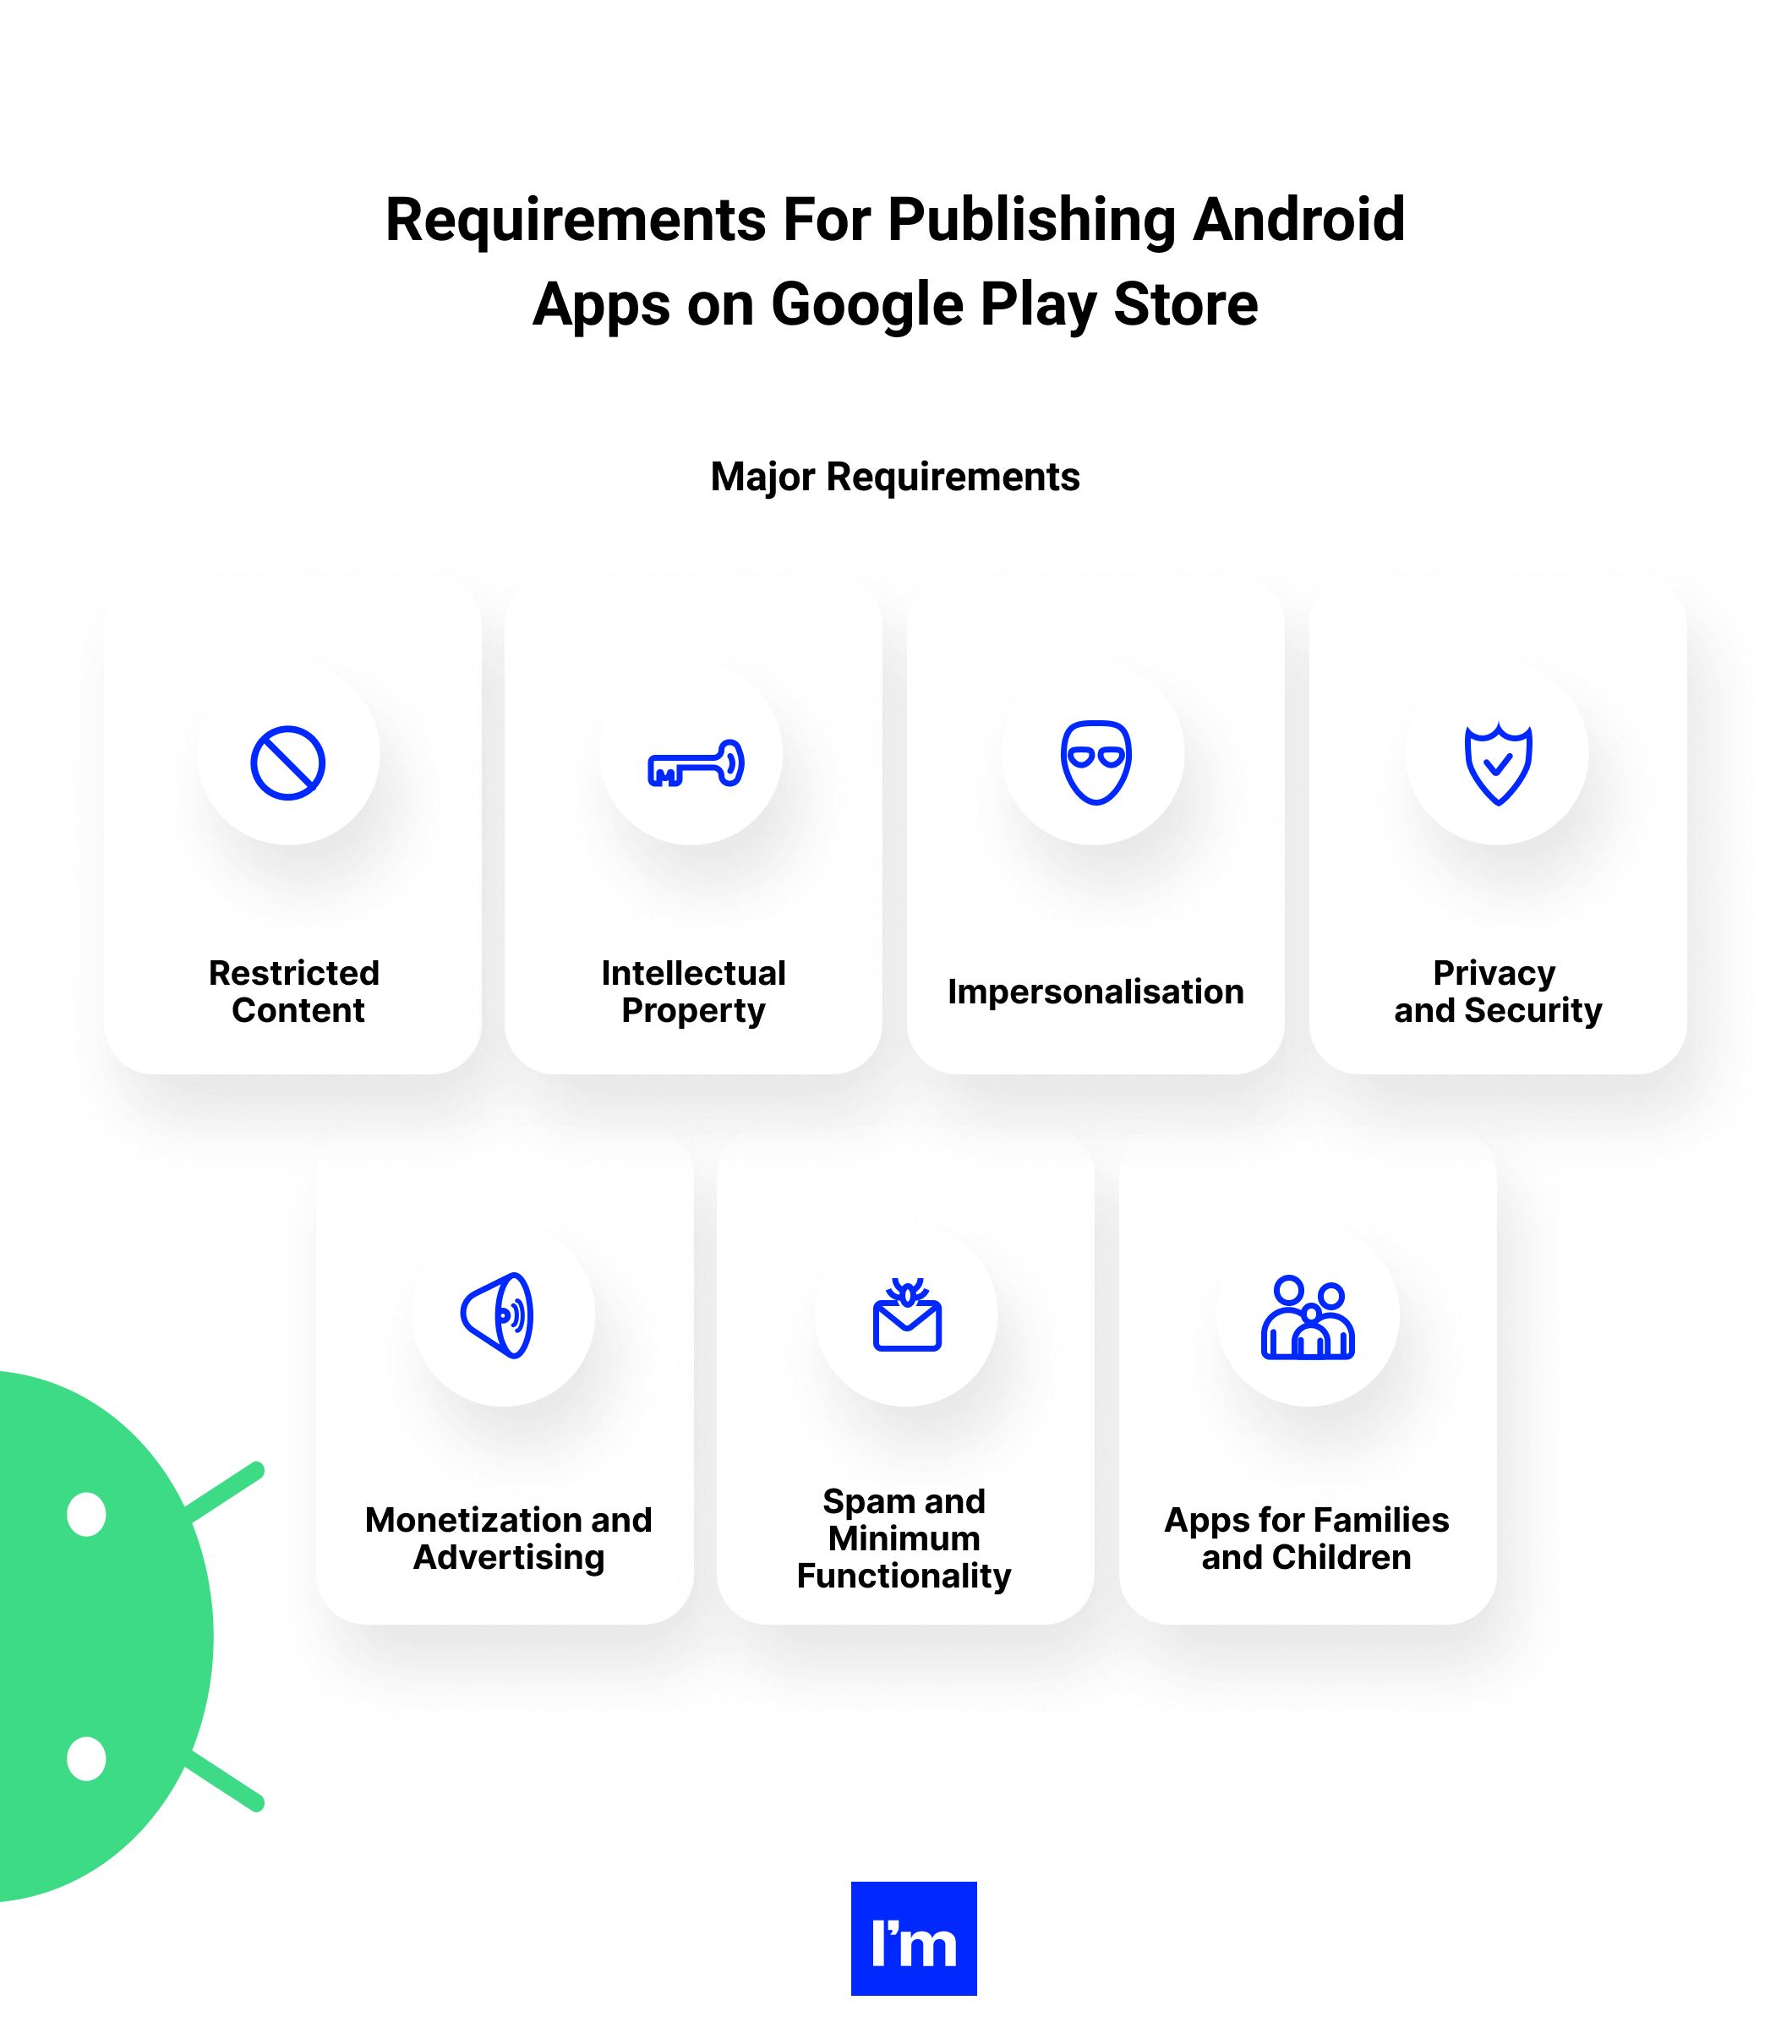 major requirements for publishing android apps on google play store